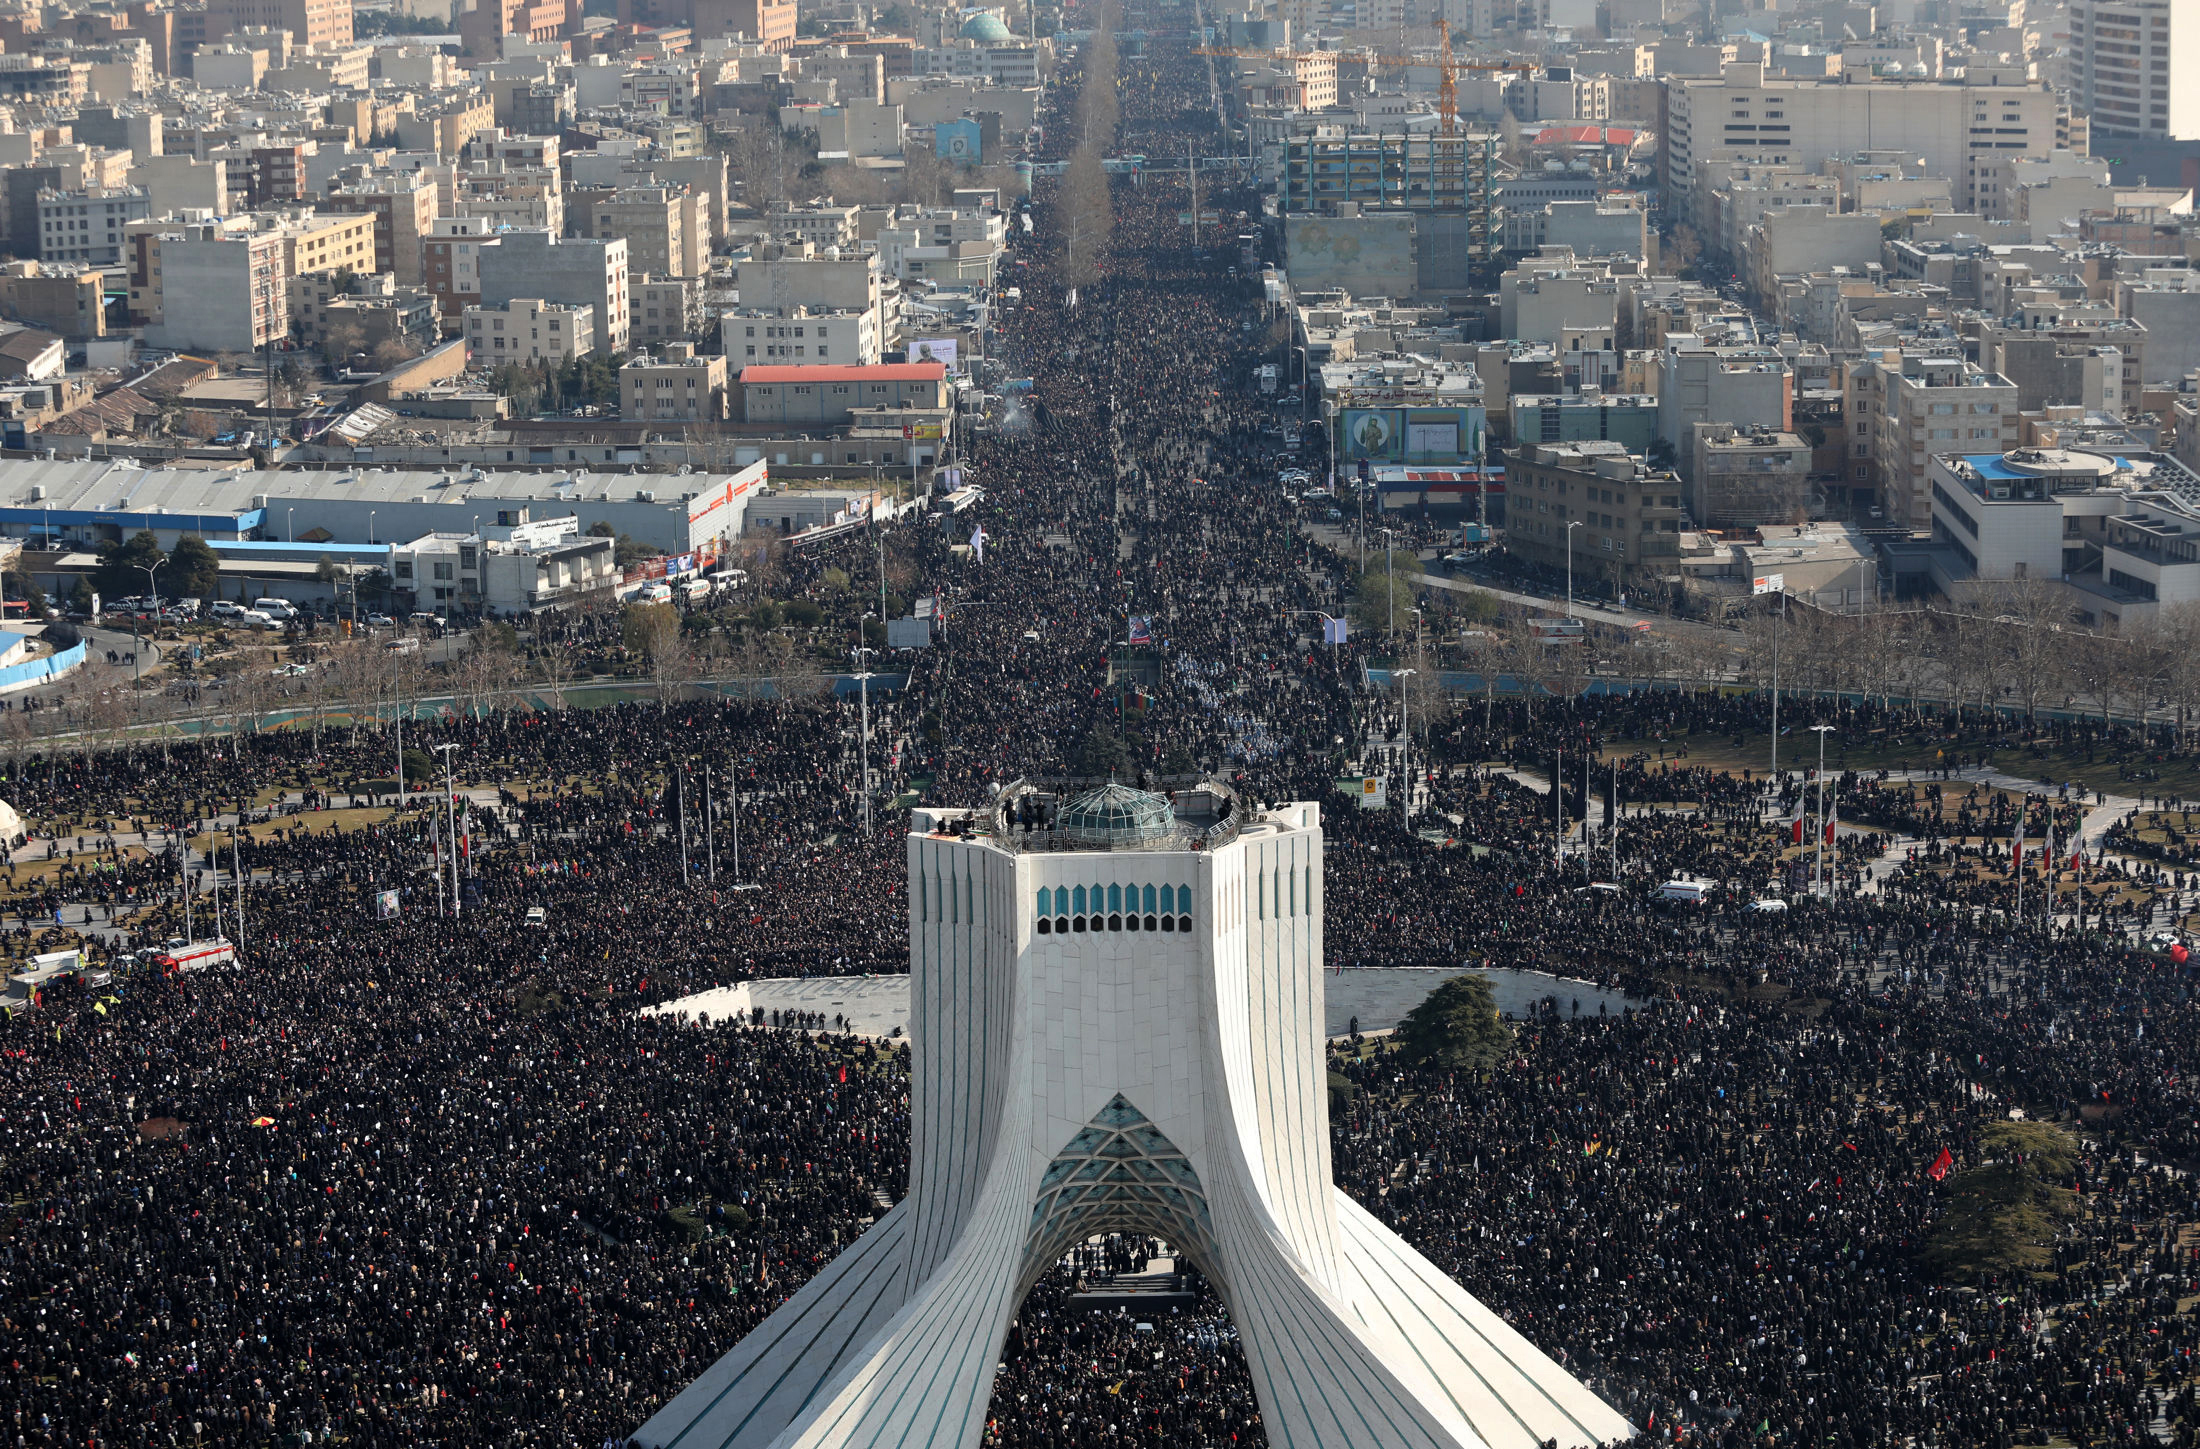 In this photo released by the official website of the Office of the Iranian Supreme Leader, mourners attend a funeral ceremony for Iranian Gen. Qassem Soleimani and his comrades, who were killed in Iraq in a U.S. drone attack on Friday, Jan. 3 as Azadi (freedom) tower is seen in the foreground, in Tehran, Iran, Monday, Jan. 6, 2020. The funeral for Soleimani drew a crowd said by police to be in the millions in the Iranian capital, filling thoroughfares and side streets as far as the eye could see. (Office of the Iranian Supreme Leader via AP)